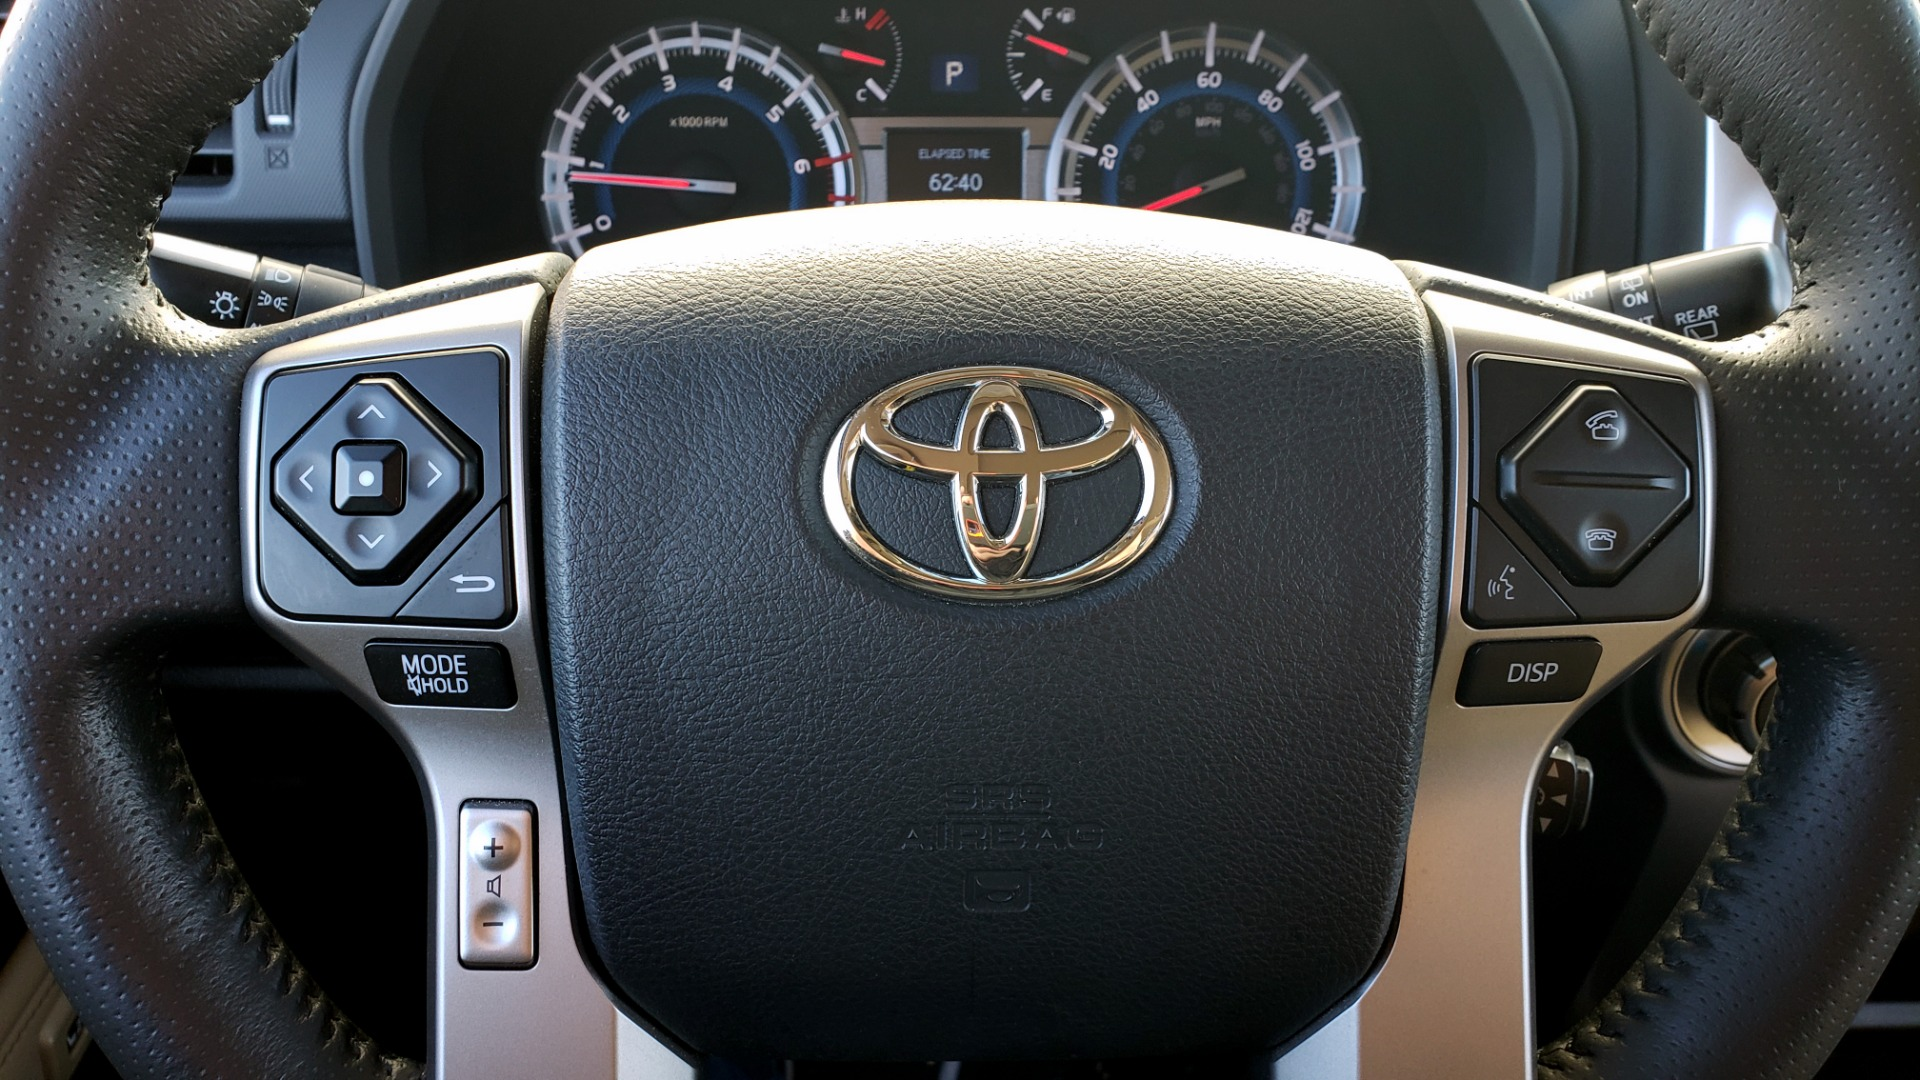 Used 2018 Toyota 4RUNNER LIMITED 4X4 / 4.0 V6 / AUTO / NAV / SUNROOF / REARVIEW for sale Sold at Formula Imports in Charlotte NC 28227 43